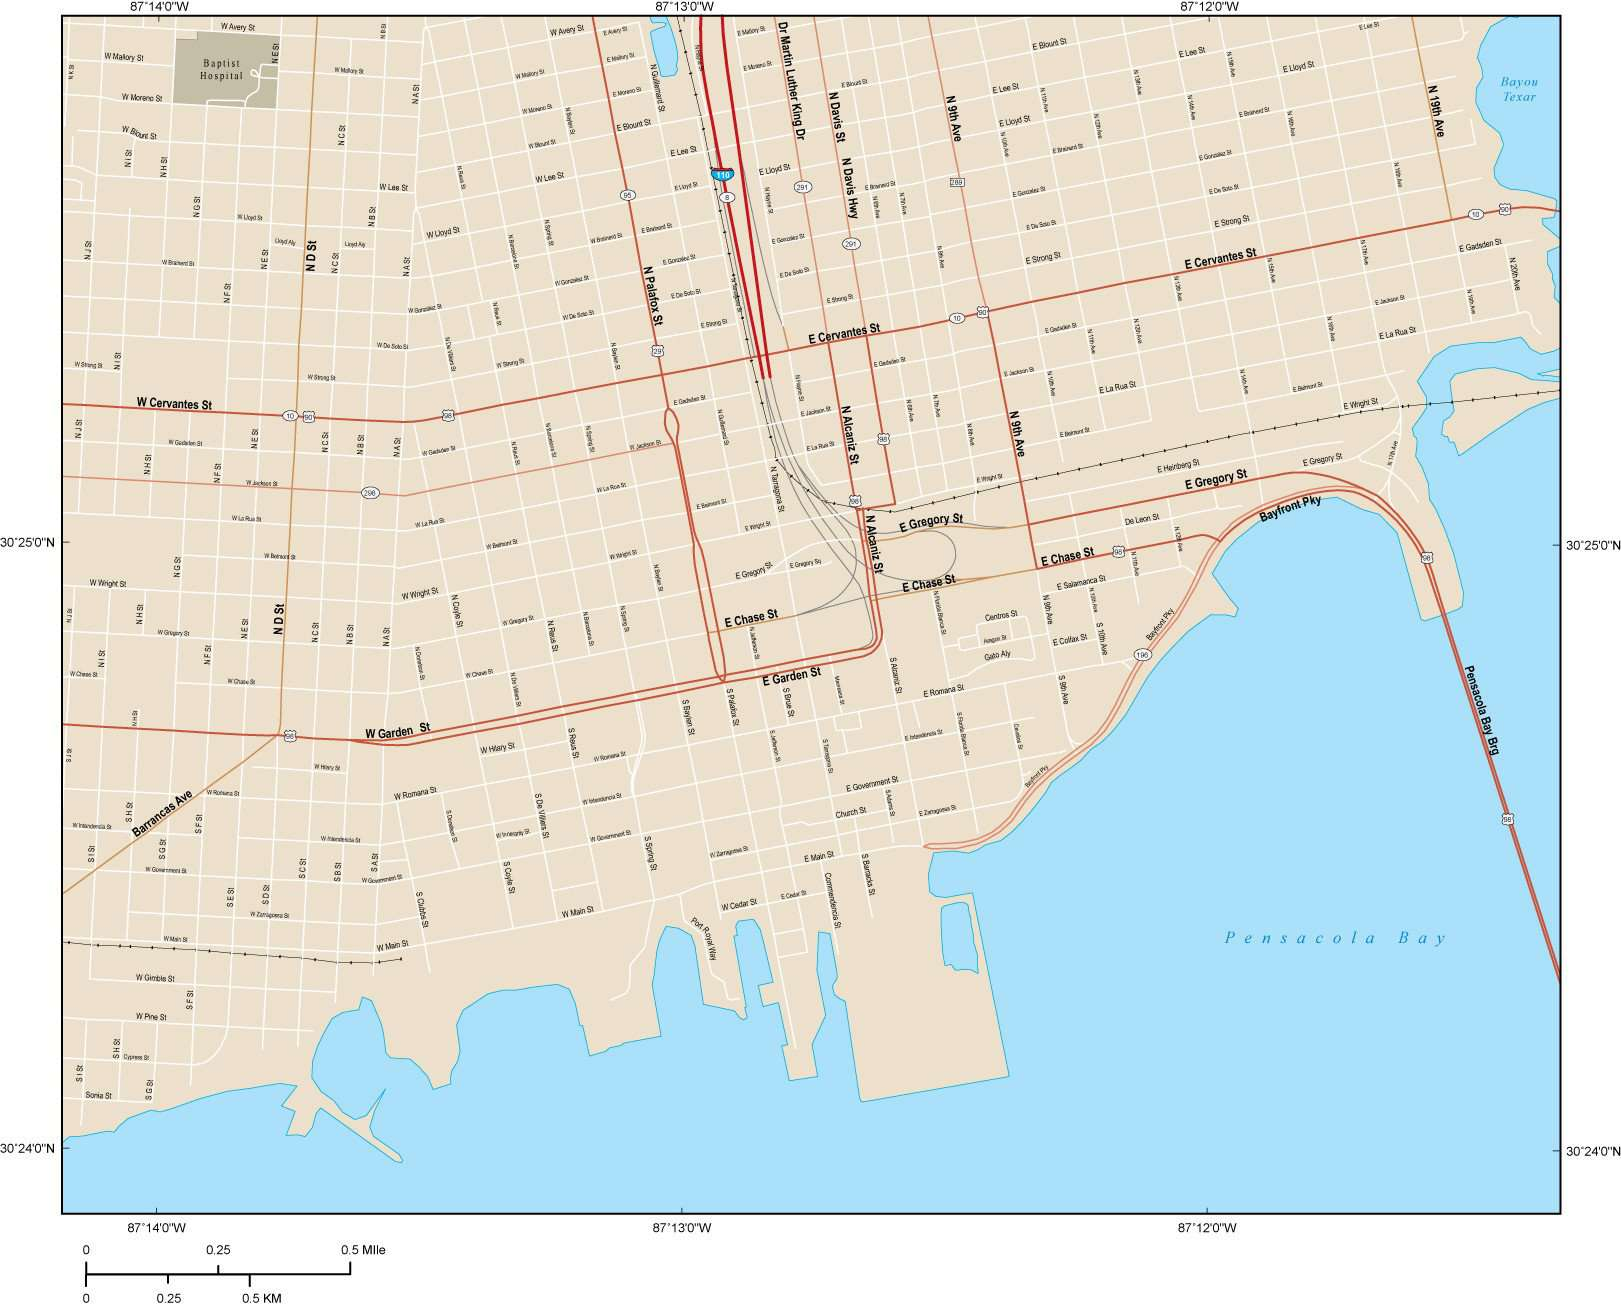 Street Map Of Downtown Pensacola Fl on map of downtown little rock ar, tourist map of pensacola fl, map of downtown paterson nj, map of pensacola and destin florida, map of downtown roseville ca, google map of pensacola fl, map of downtown plano tx, map of beaches fl, map of downtown traverse city mi, airport pensacola fl, map of downtown redwood city ca, map of downtown rockville md, map of pensacola christian college, streets in pensacola fl, map of downtown las vegas nv, map of downtown palm springs ca, map of downtown new bern nc, map of downtown santa barbara ca, road map of pensacola fl, map of downtown new orleans la,